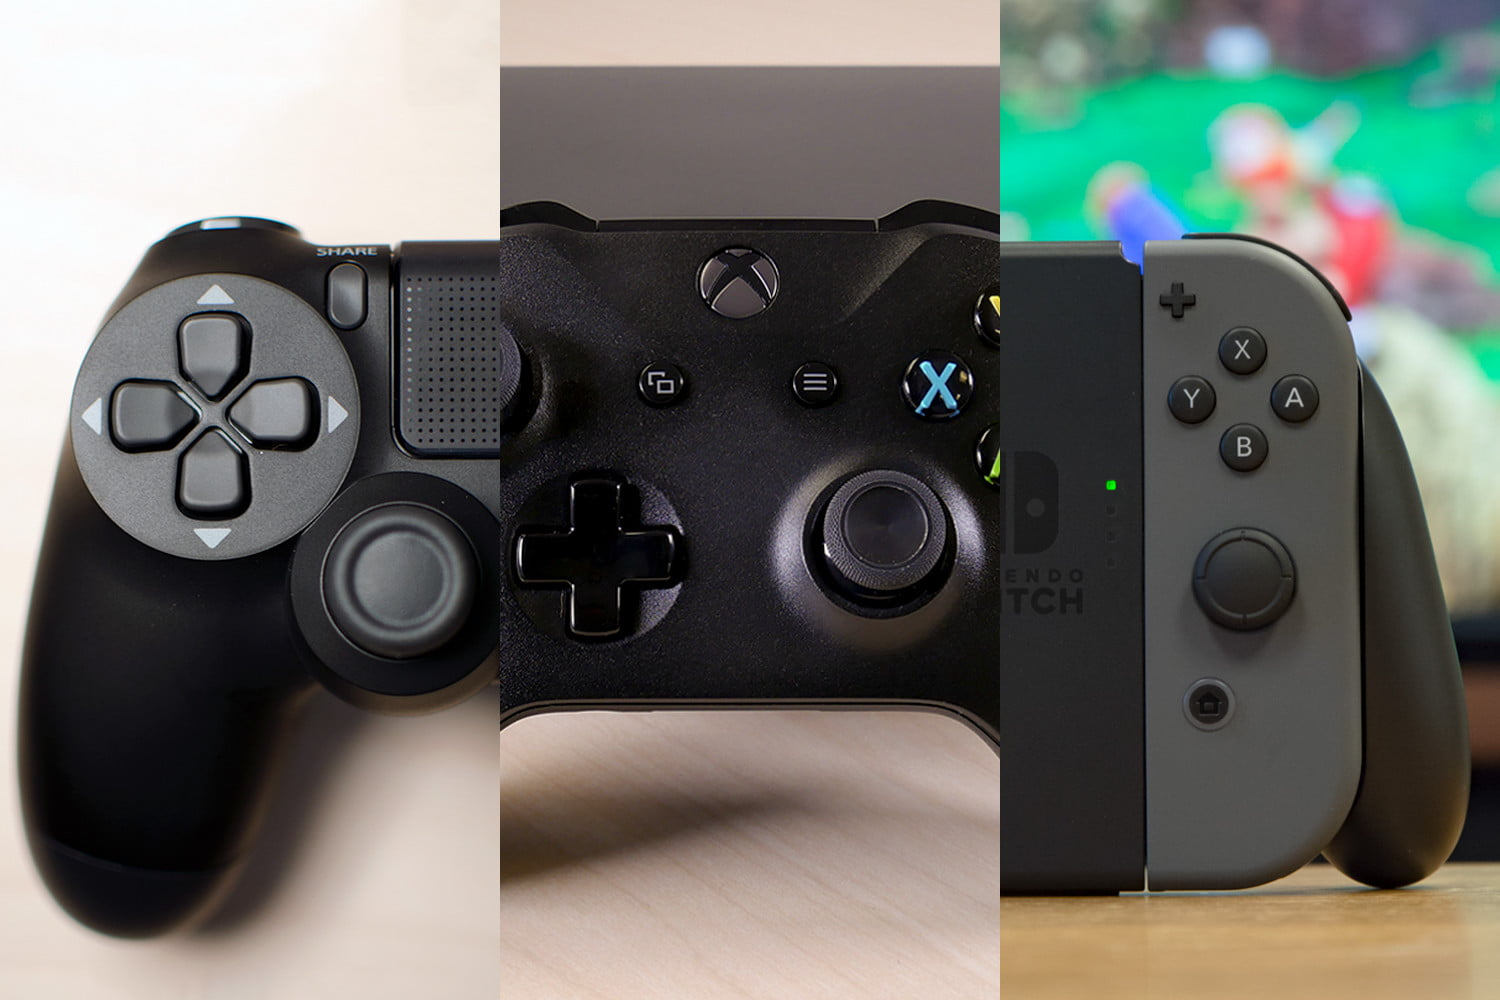 Nintendo vs Sony vs Microsoft: Which Company Won and Lost in